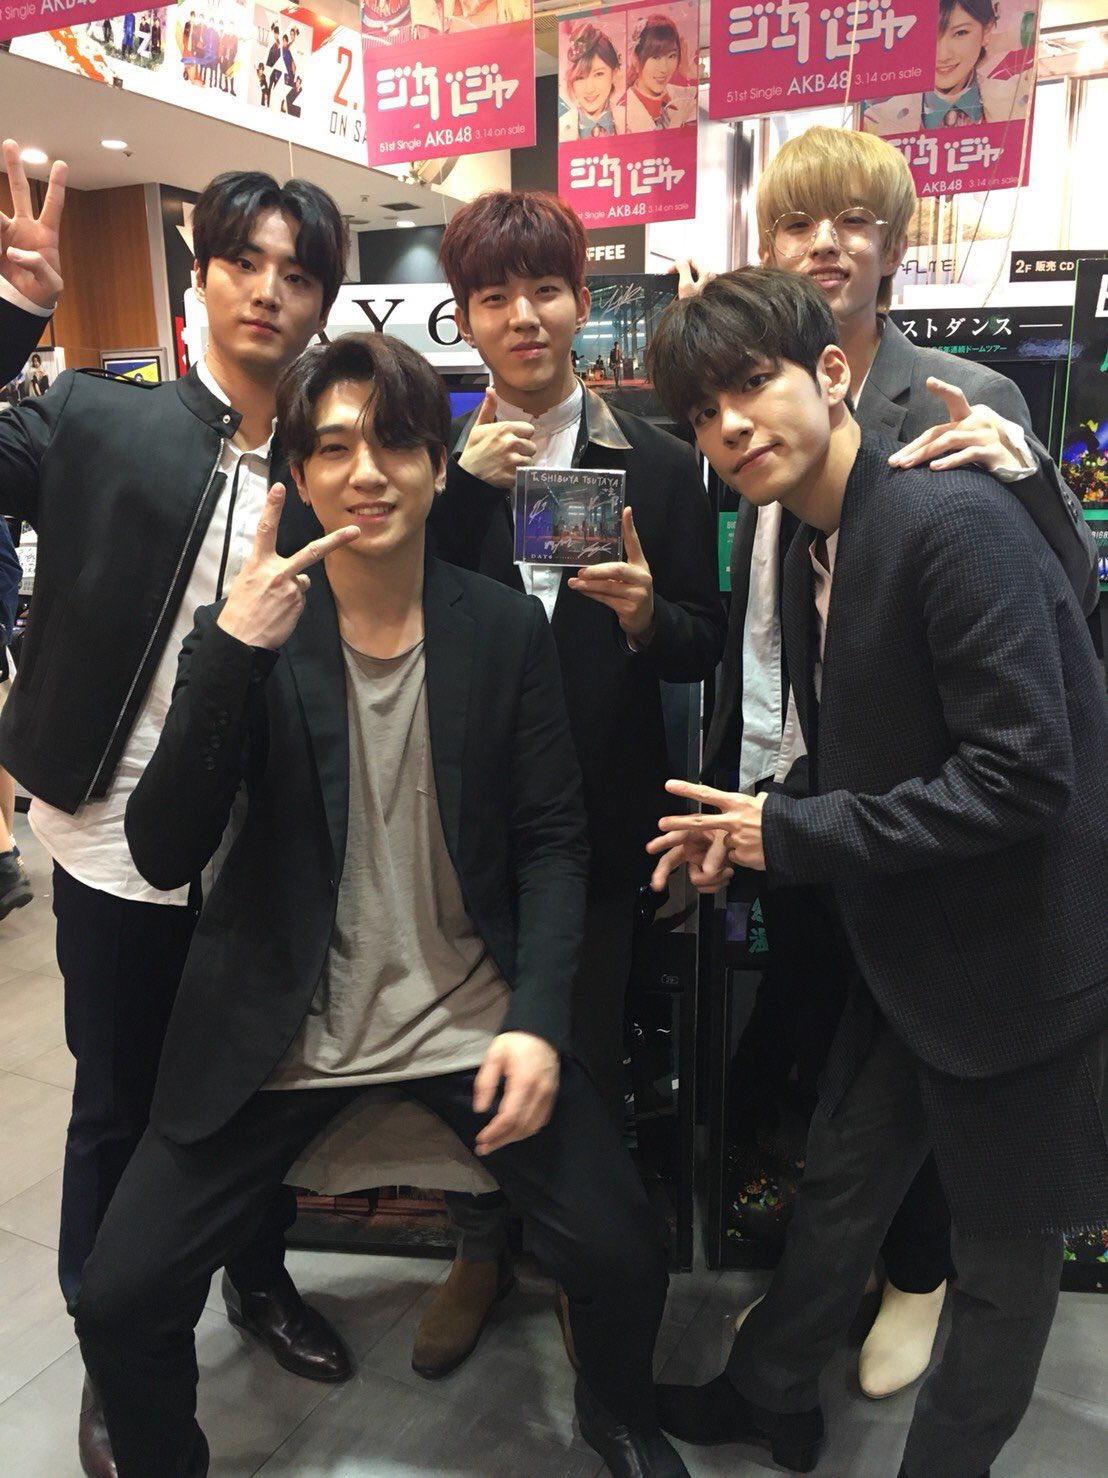 BY THE WAY CONGRATULATIONS DAY6 FOR: -Japan debut -Album sold out -Get into oricon chart I'm beyond proud�� https://t.co/eHBb9hLN9O